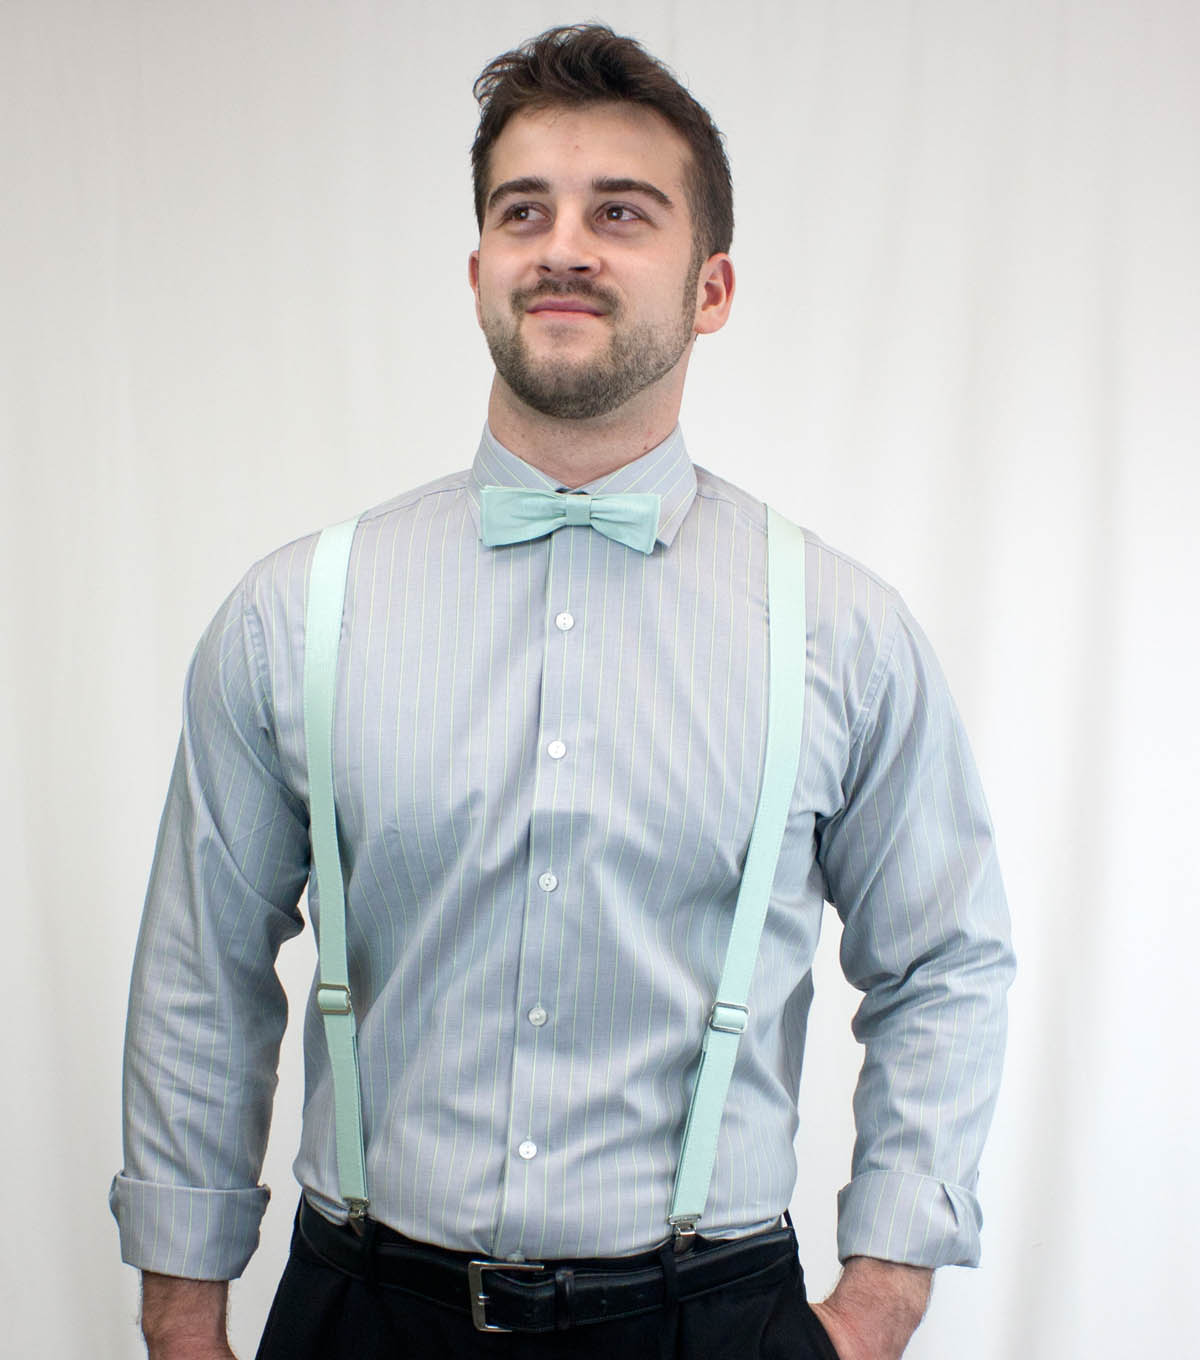 Air force Suspenders inch Made in U.S.A SUSAFNG. Add to Cart. $ Add to Cart.